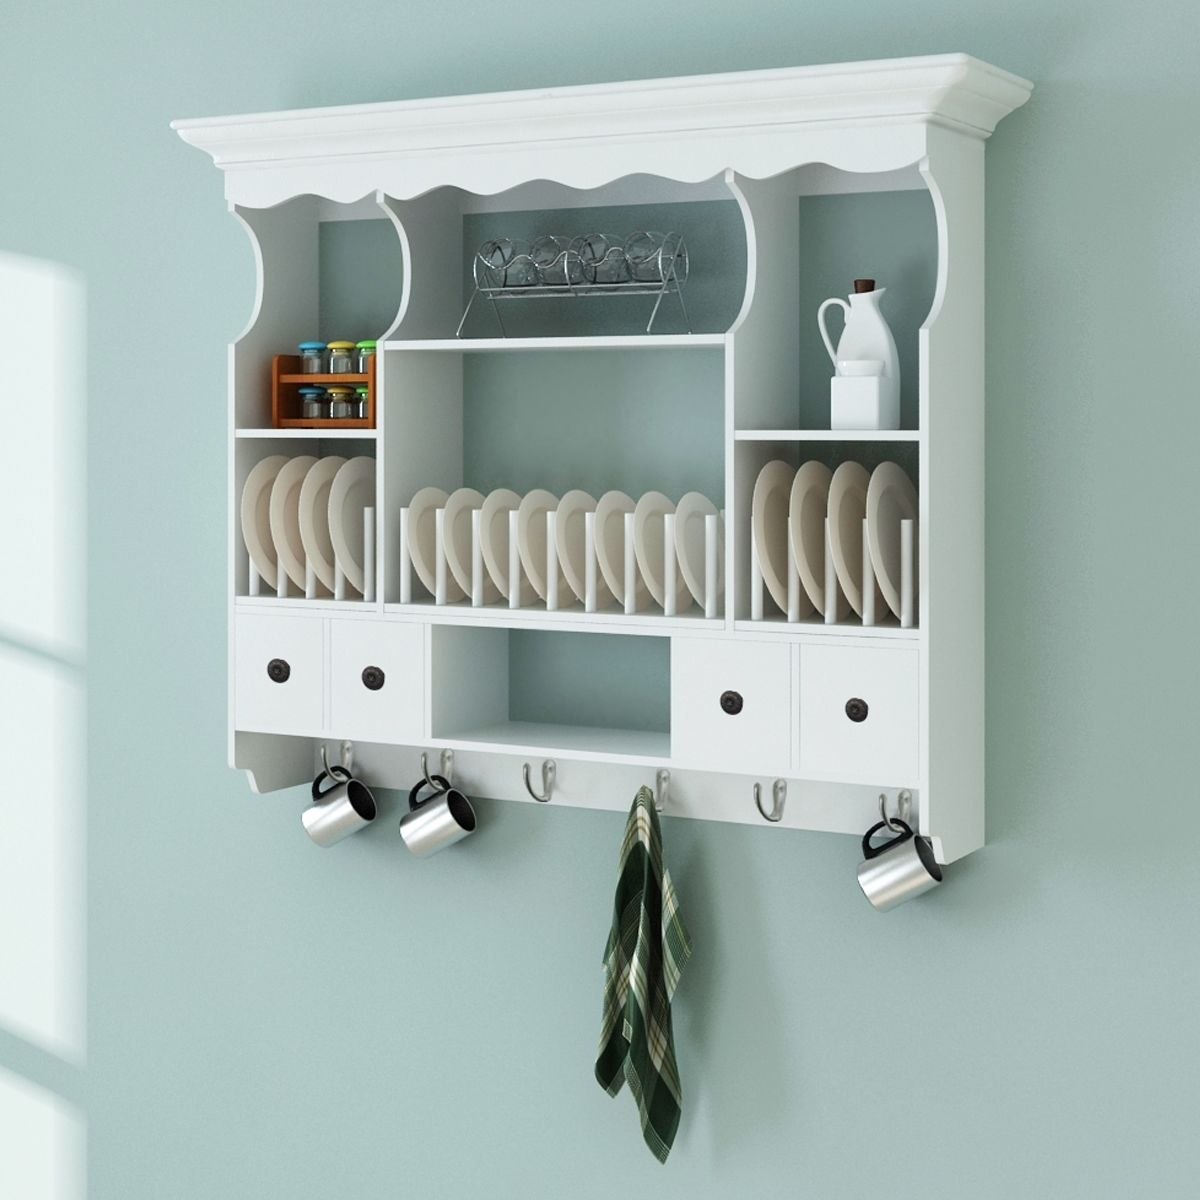 Wooden White Wall Shelves with Kitchen Cabinet Cupboard Storage